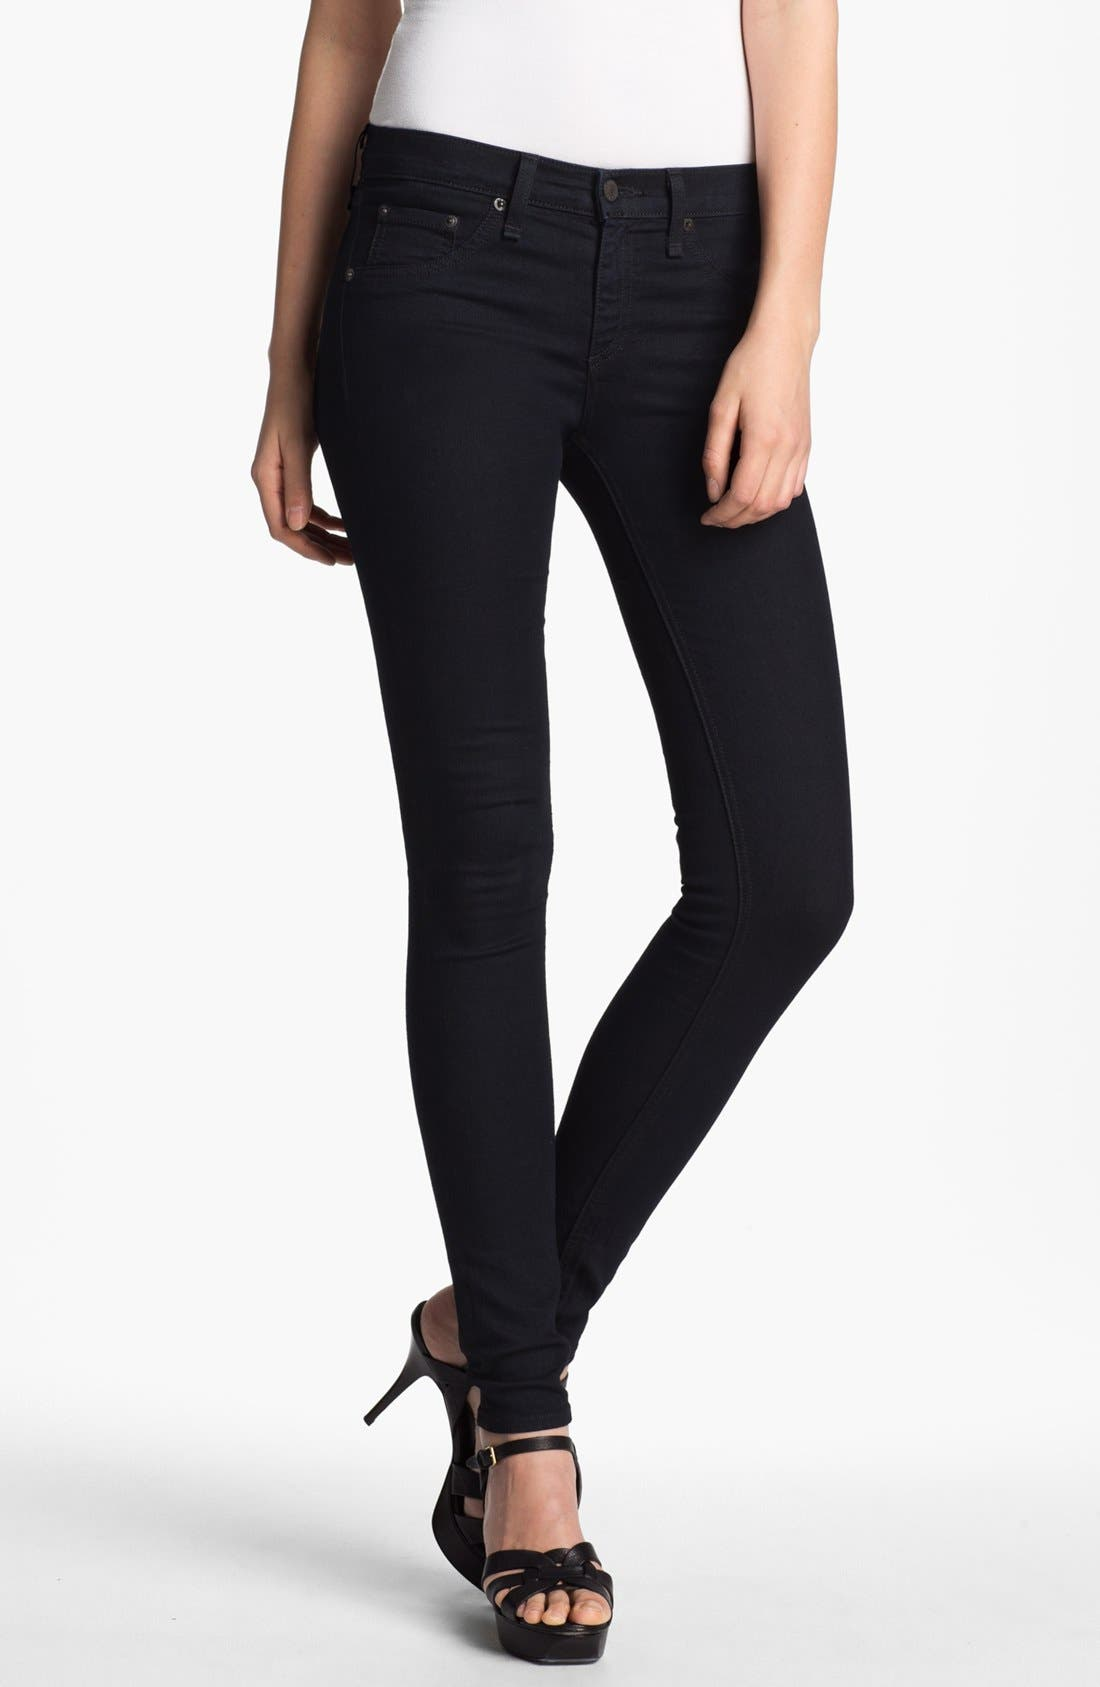 Main Image - rag & bone/JEAN 'The Legging' Stretch Denim Leggings